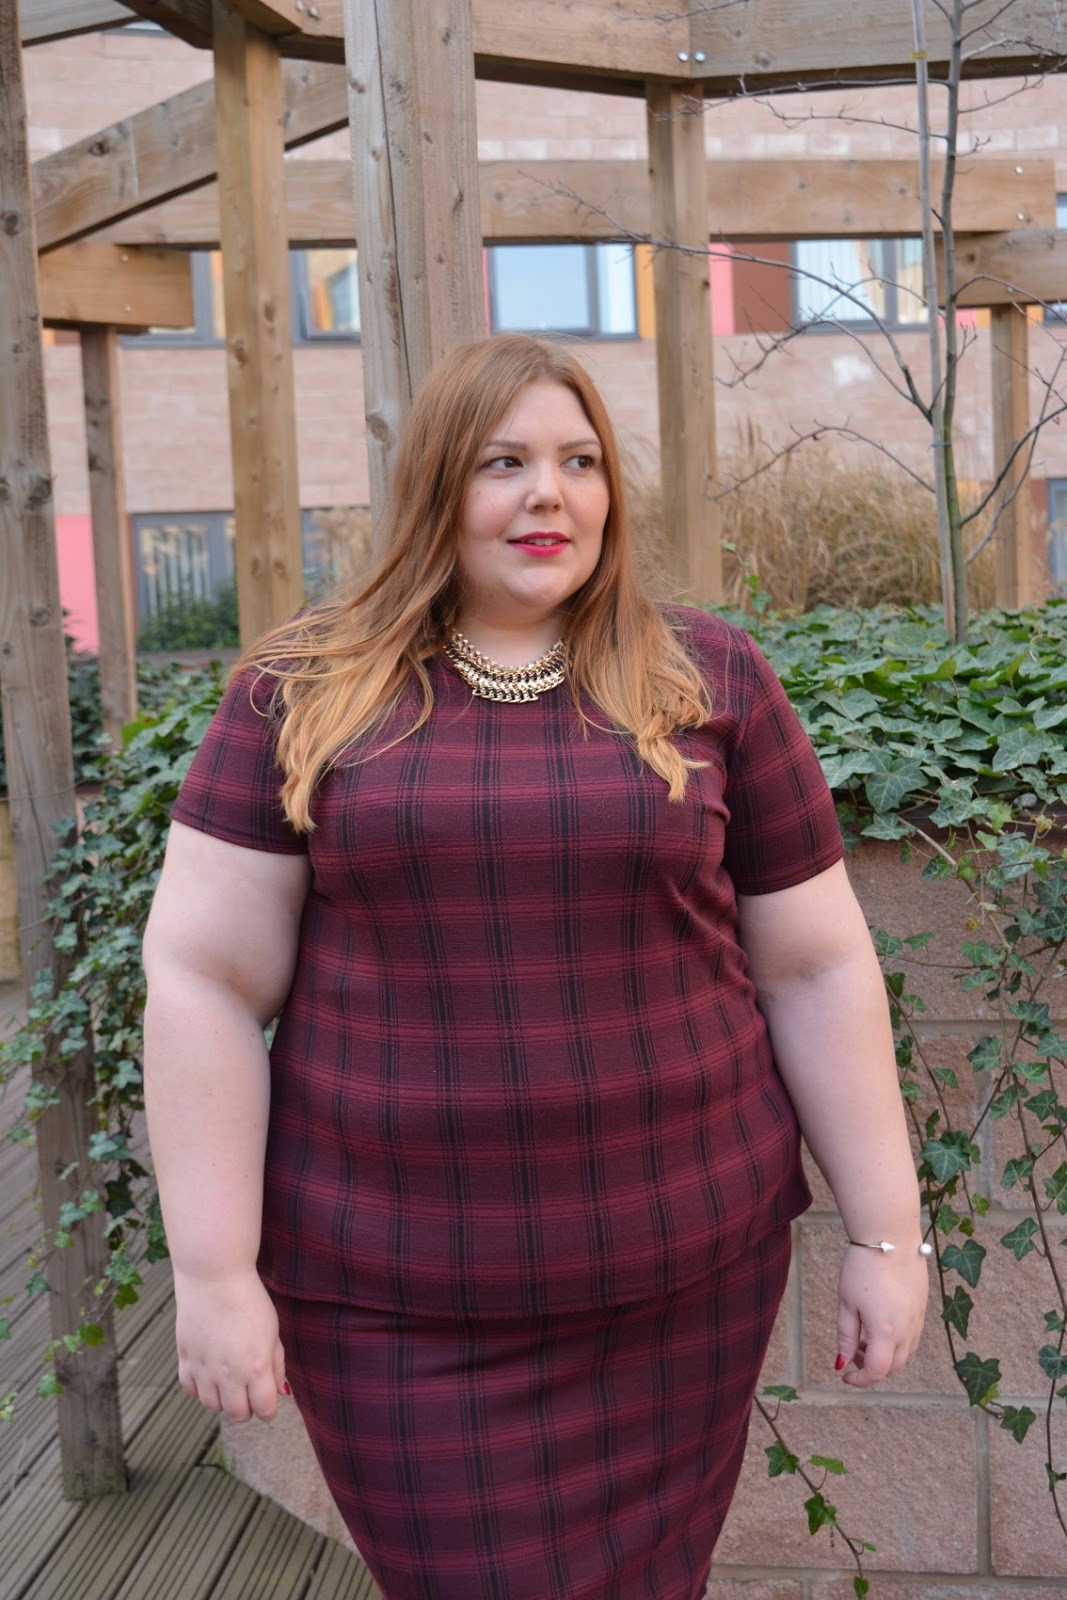 kelley bbw dating site Chubby bunnie is a bbw dating site with online plus size personals for bbw singles, here we have big beautiful woman (chubby bunnies), big handsome man.